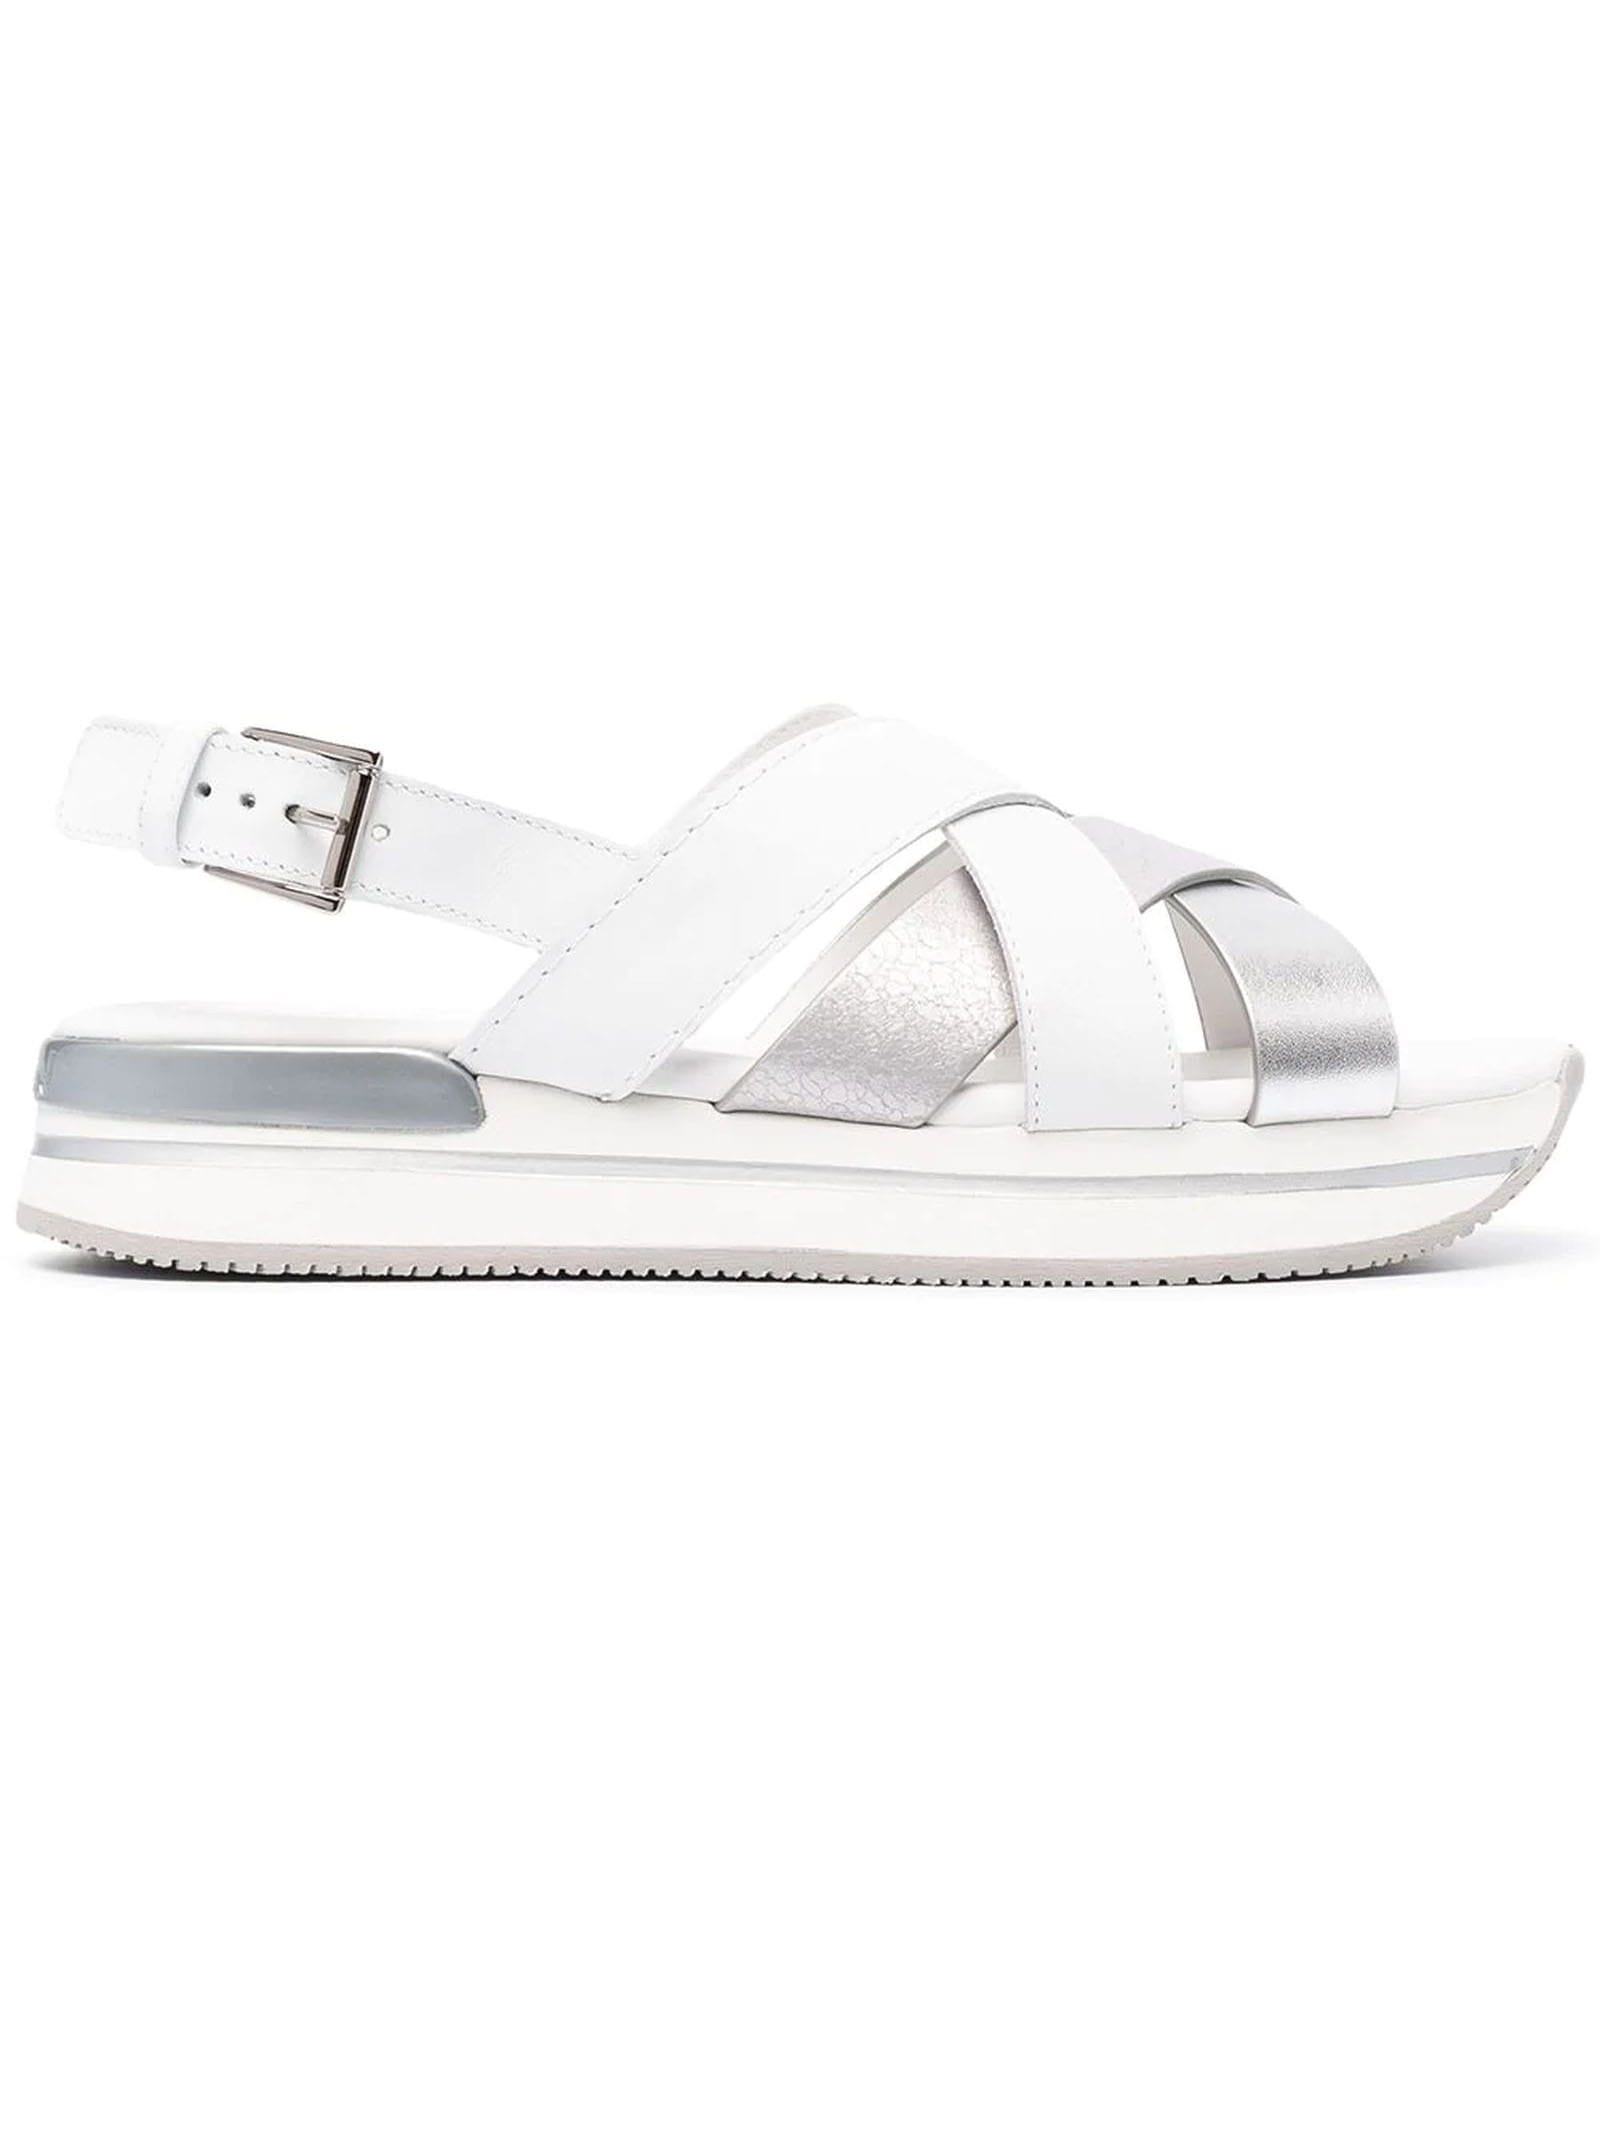 Hogan Leathers H222 CROSSED SANDALS WHITE, SILVER